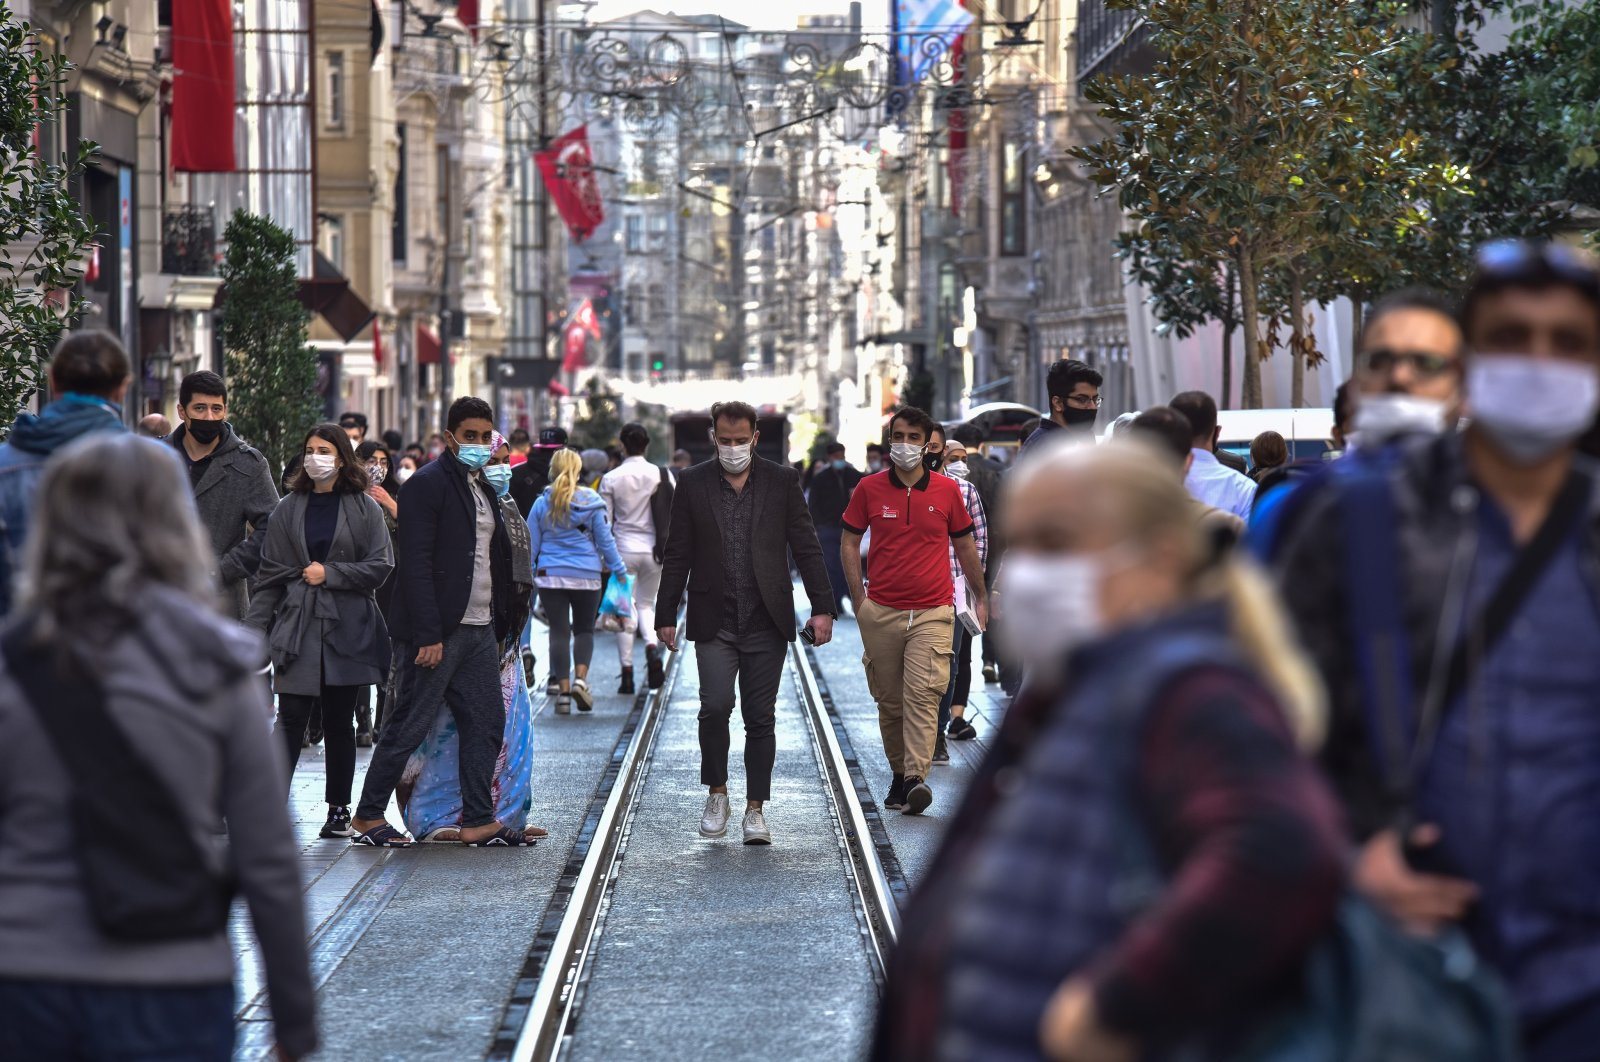 People wearing protective masks walk on Istiklal Avenue, in Istanbul, Turkey, Nov. 2, 2020. (DHA Photo)